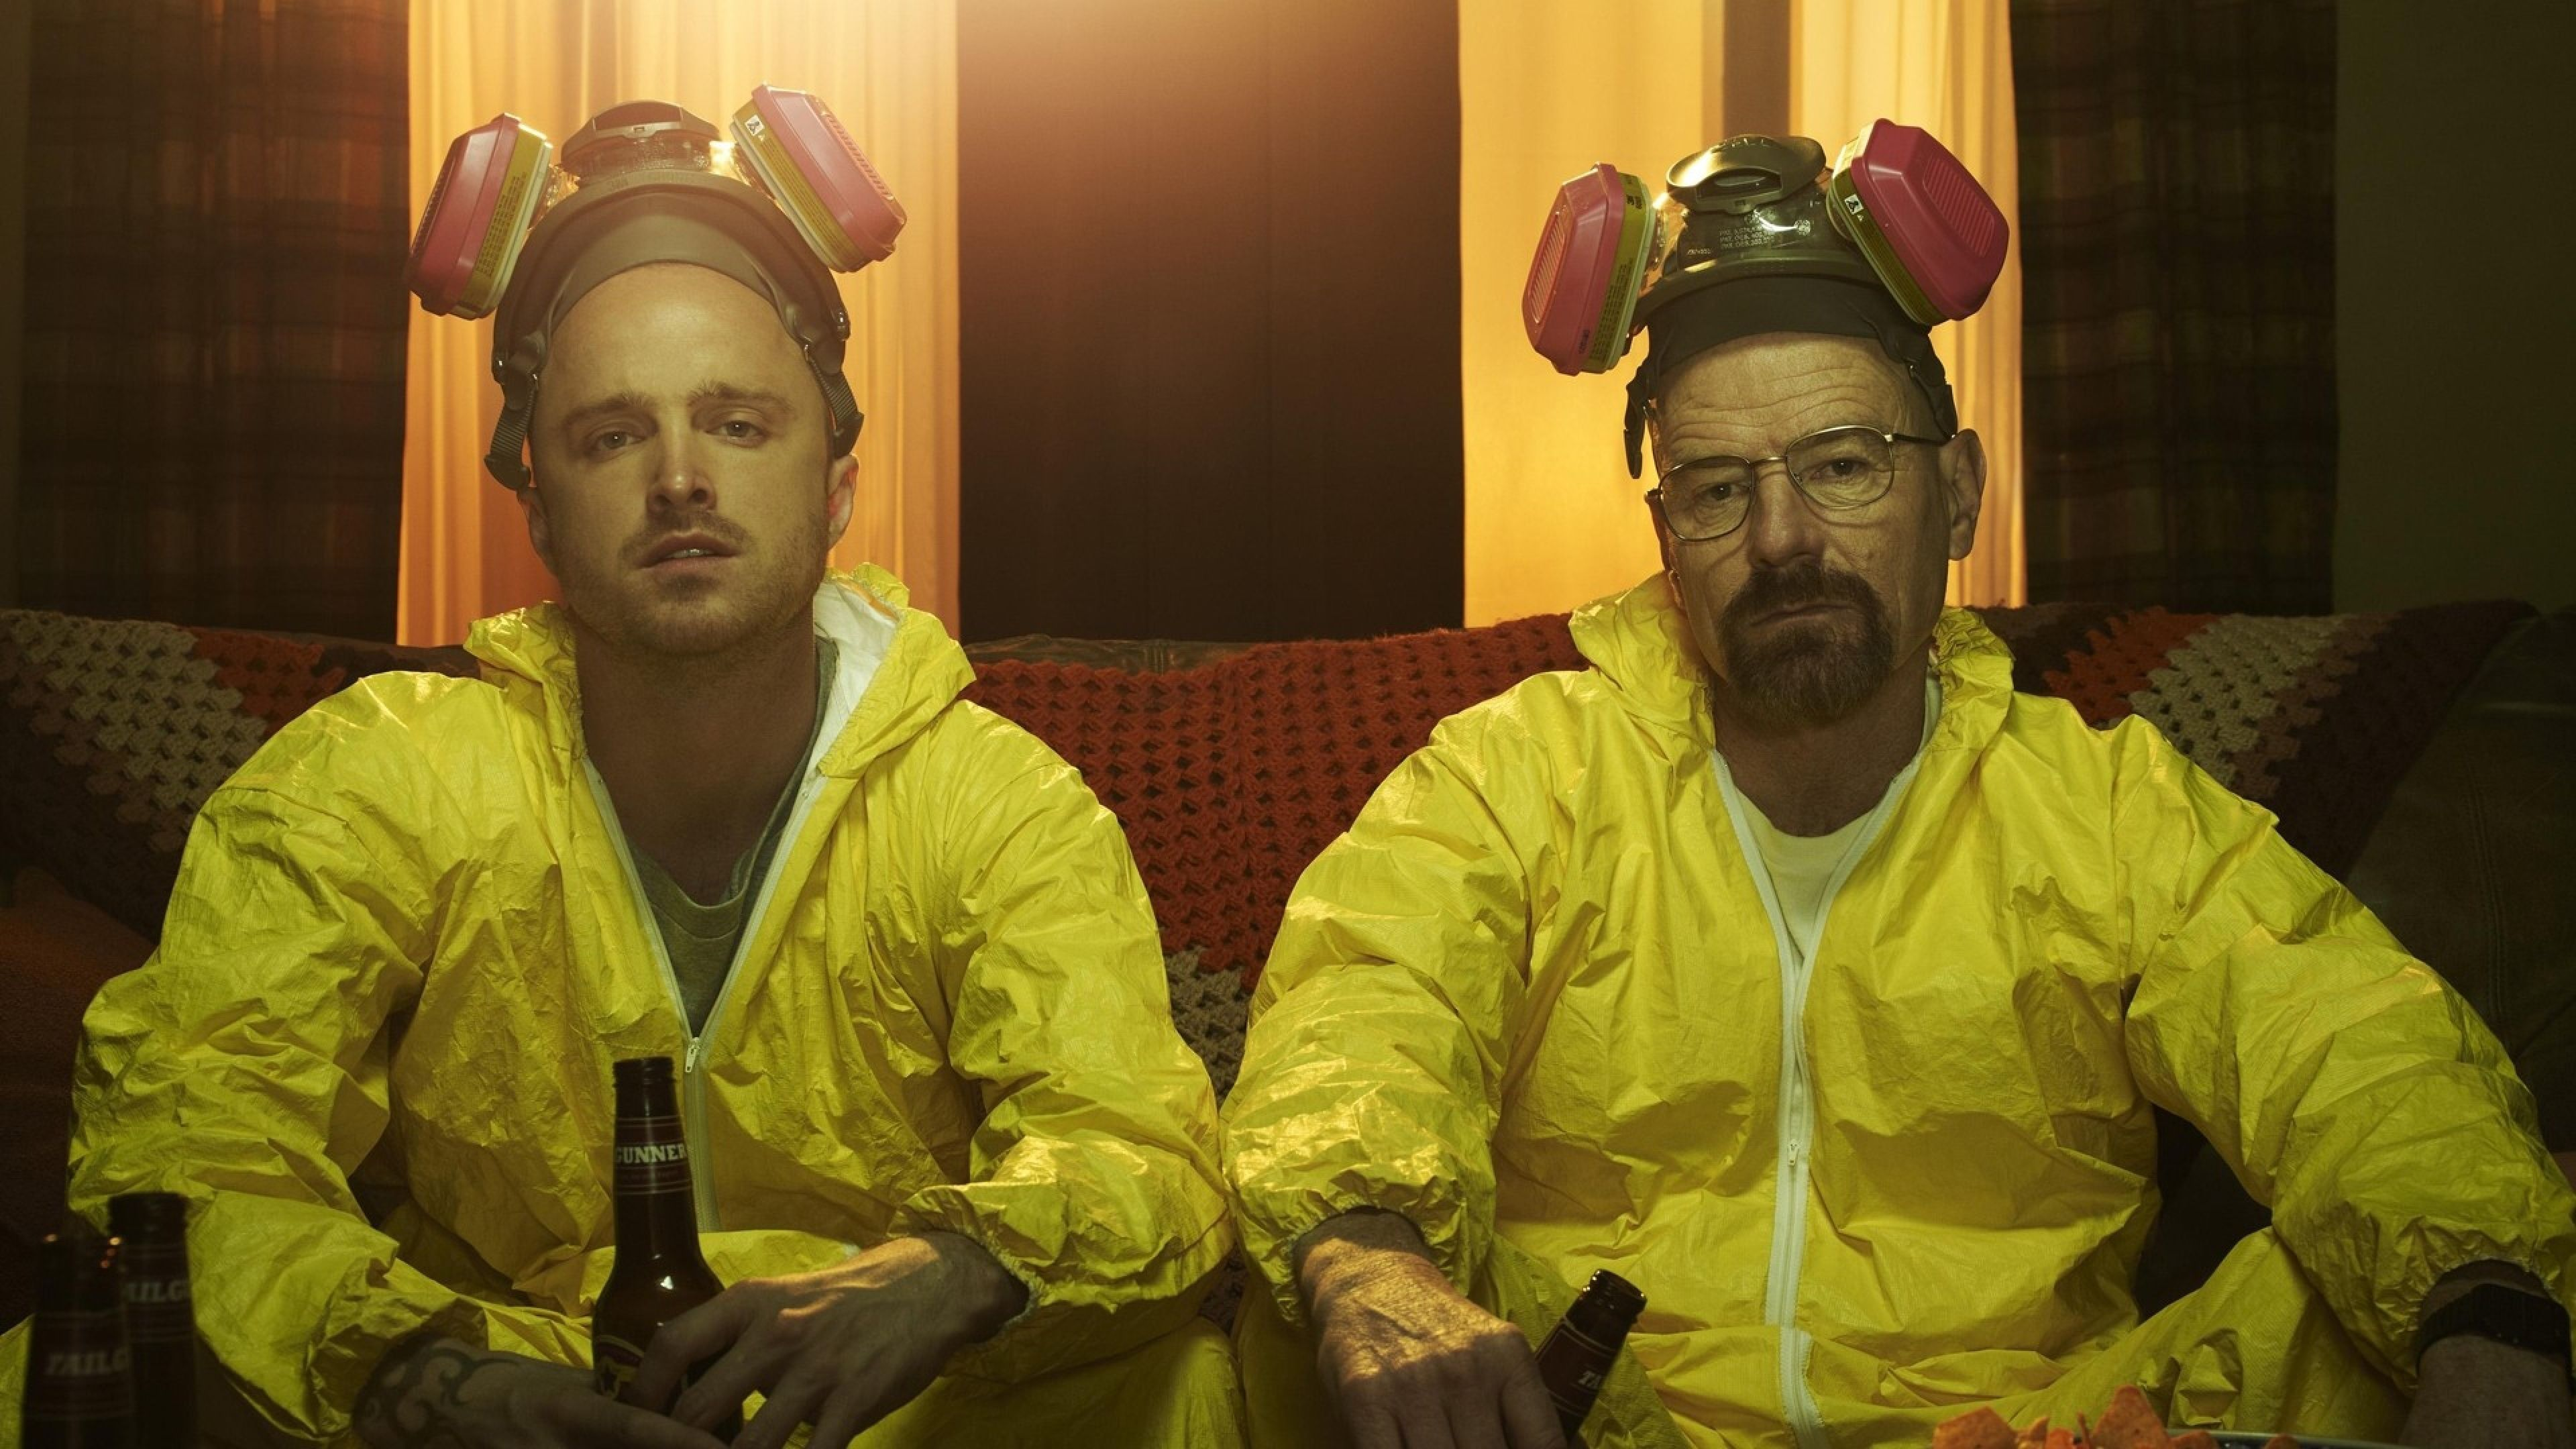 Breaking Bad Wallpaper 1080p Sdeerwallpaper Hd 1920x1080